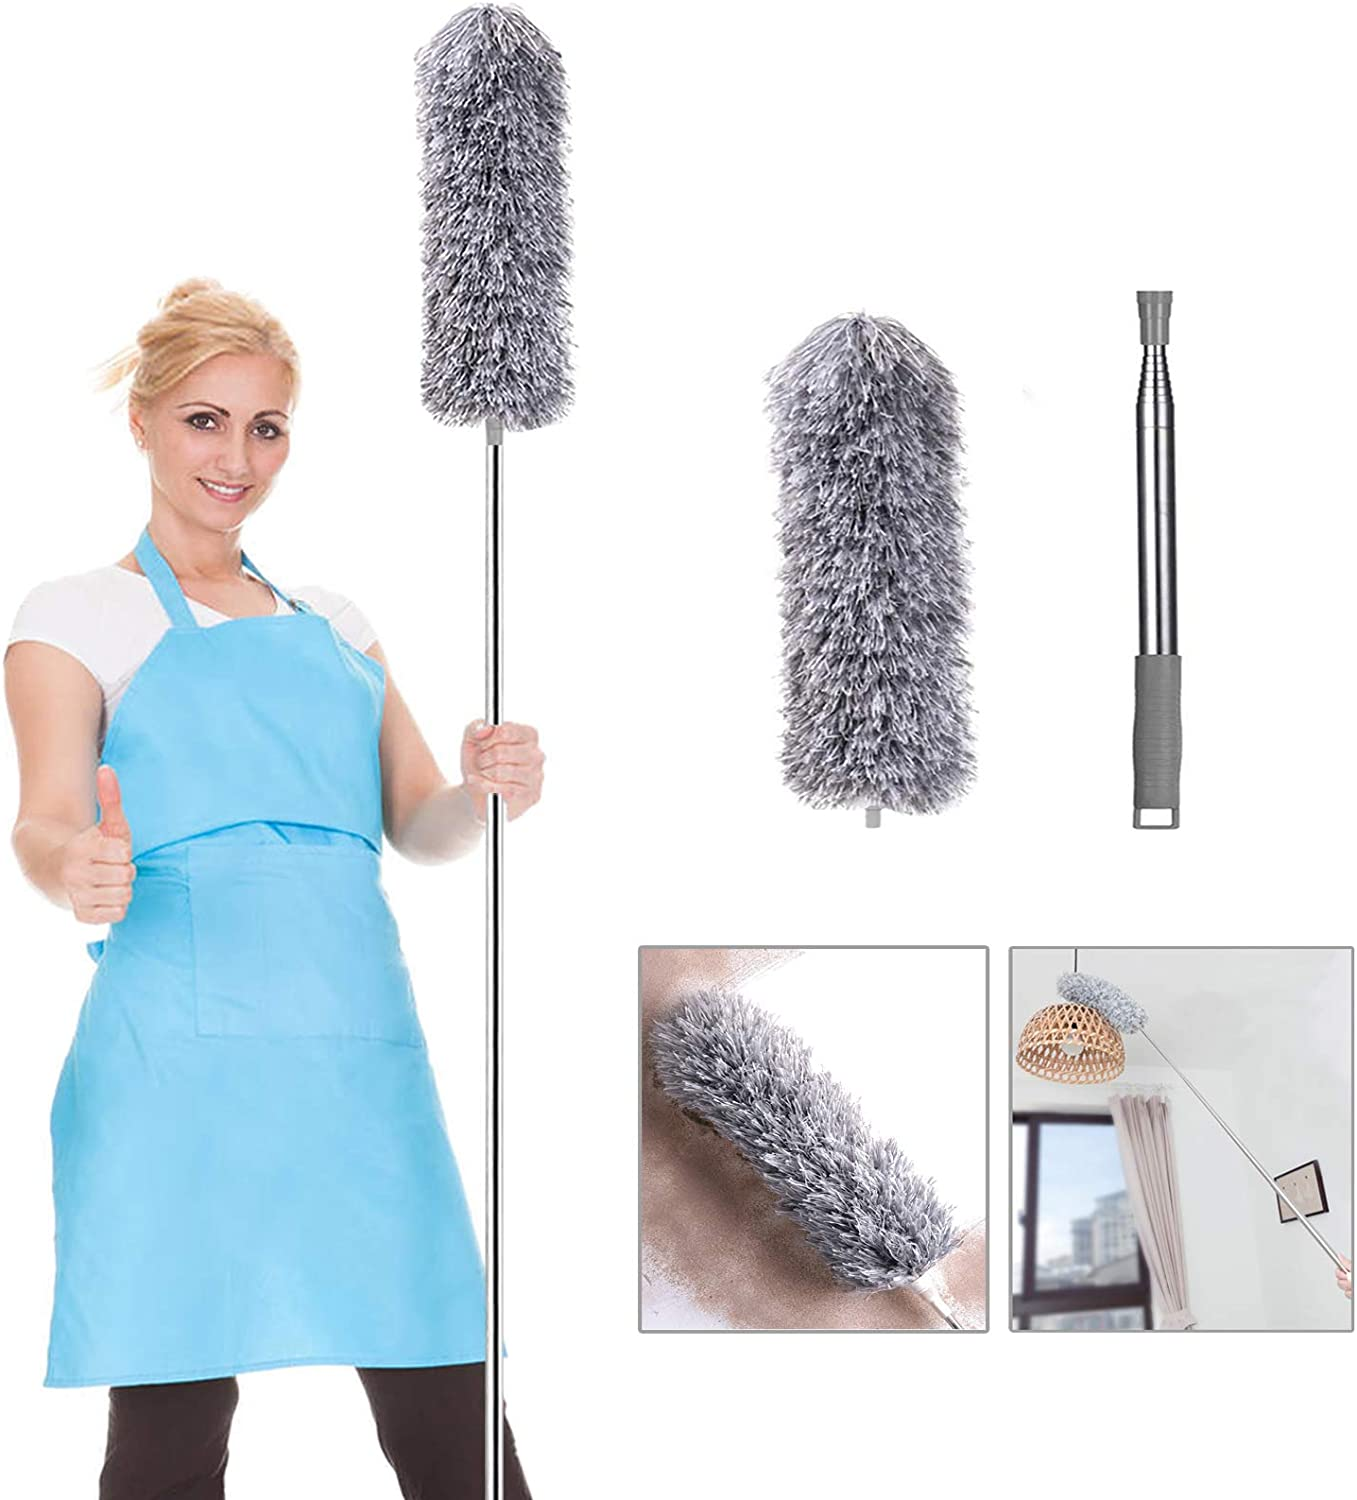 Blinds Telescoping Microfiber Duster for Cleaning Bendable Head /& Washable for Cleaning Ceiling Fan 30 to 100 Cobweb Duster with Extension Pole Furniture /& Cars High Ceiling